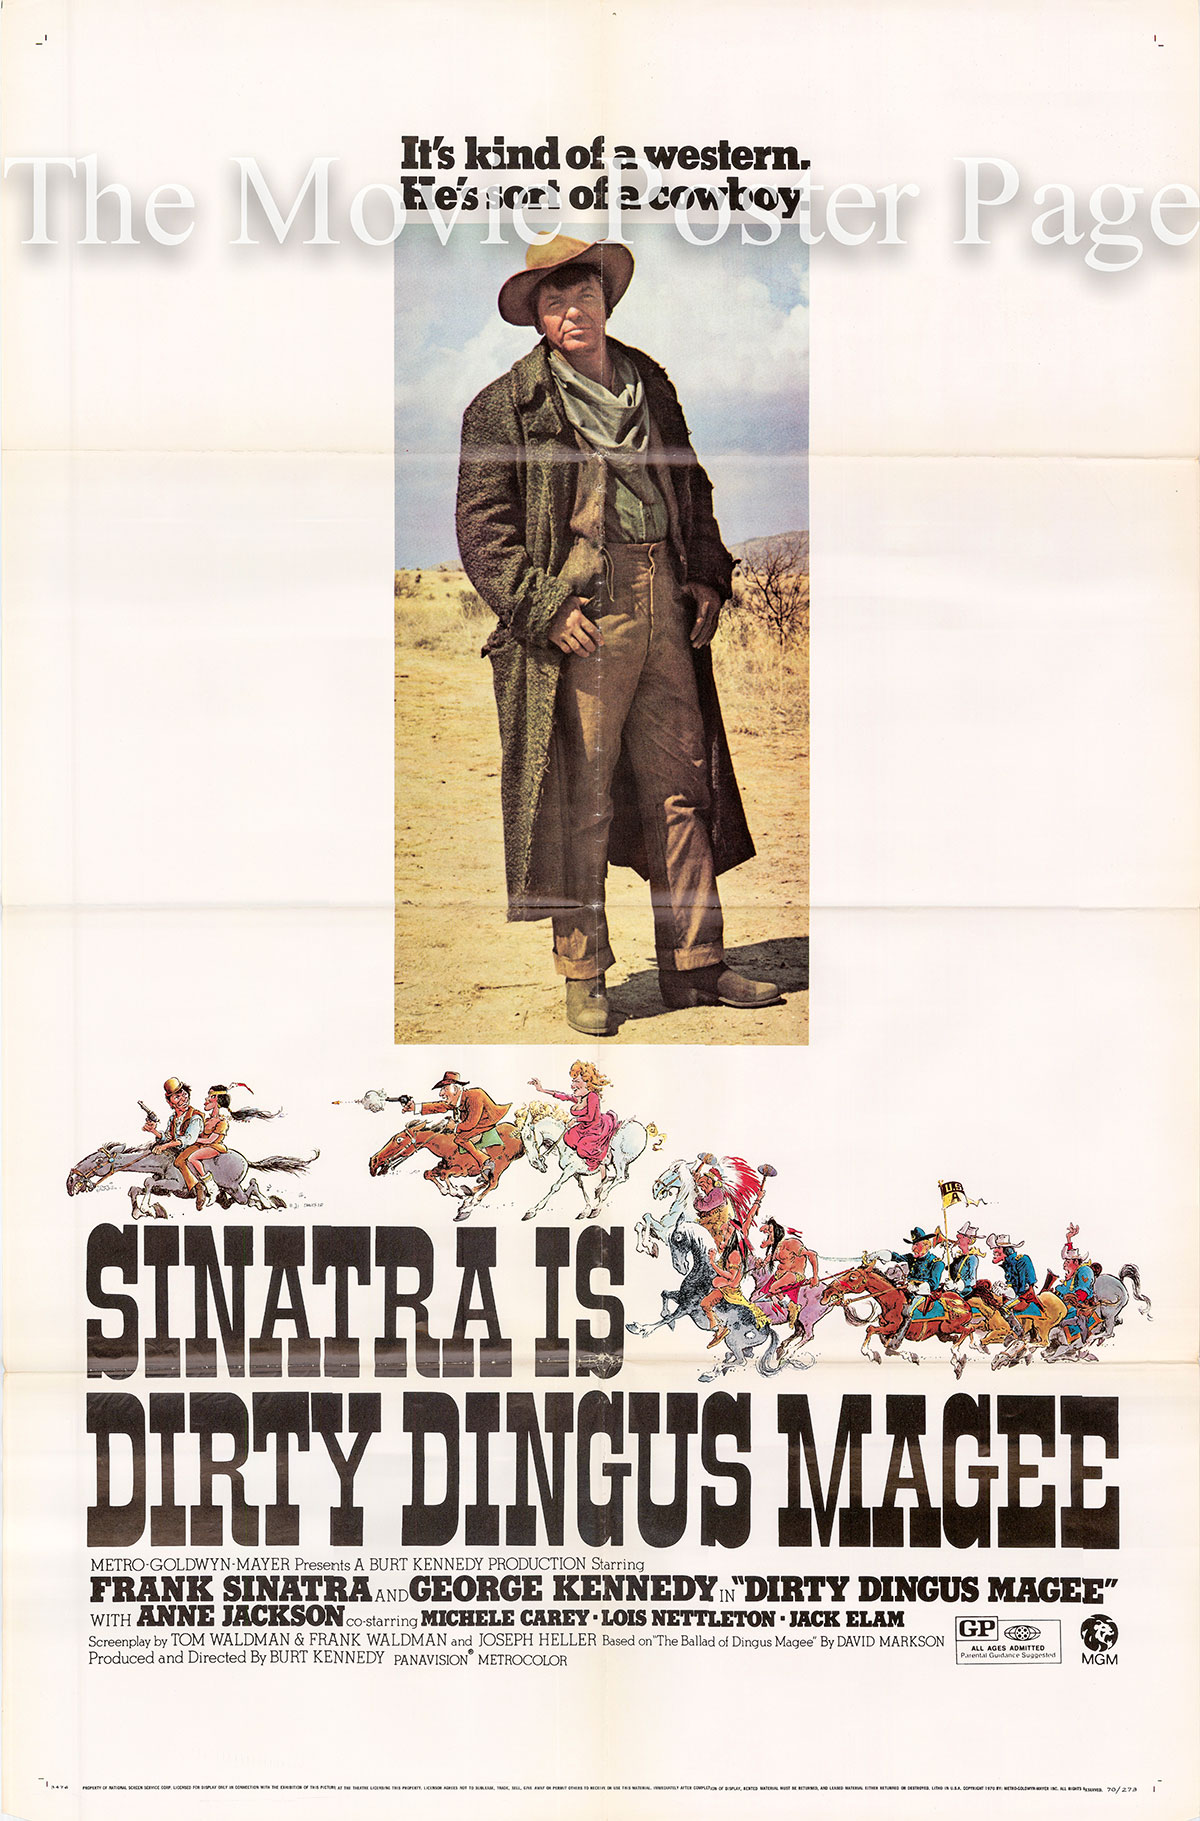 Pictured is a US one-sheet for the 1970 Burt Kennedy film Dirty Dingus Magee starring Frank Sinatra.